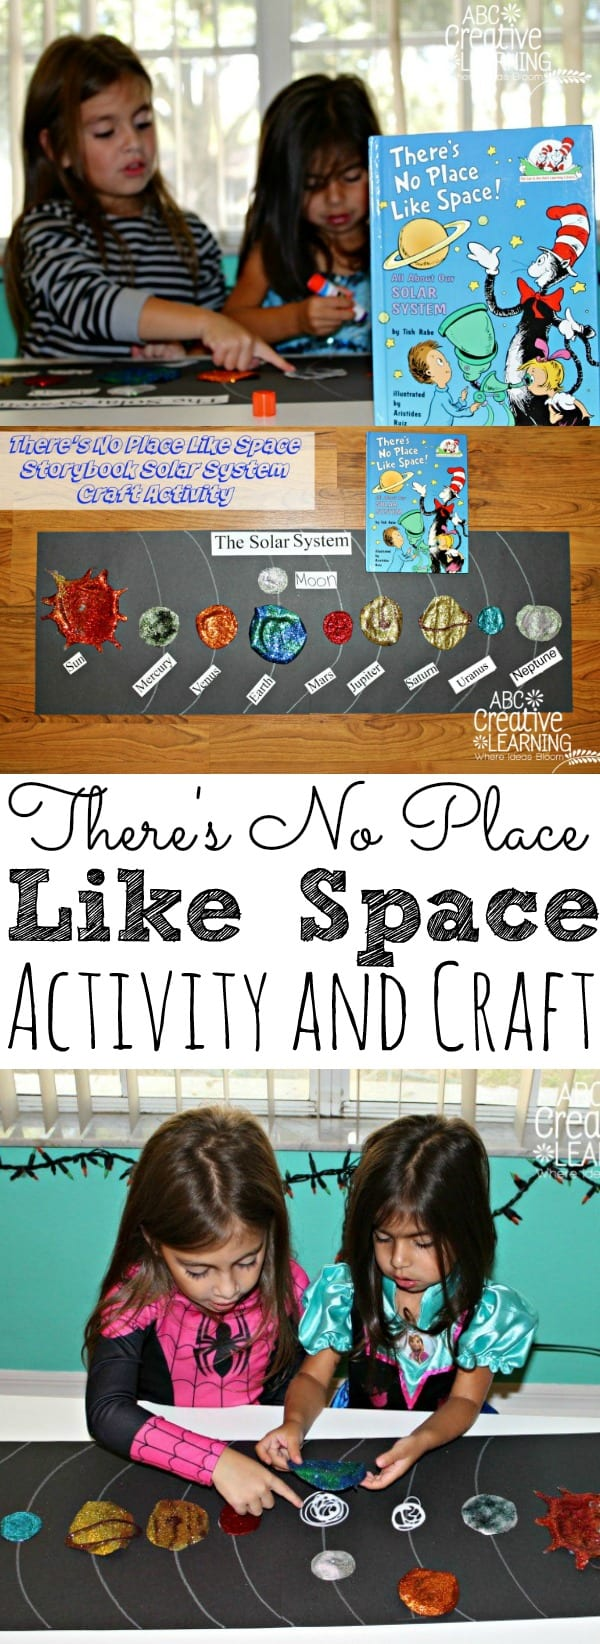 There's No Place Like Space Storybook Activity - simplytodaylife.com